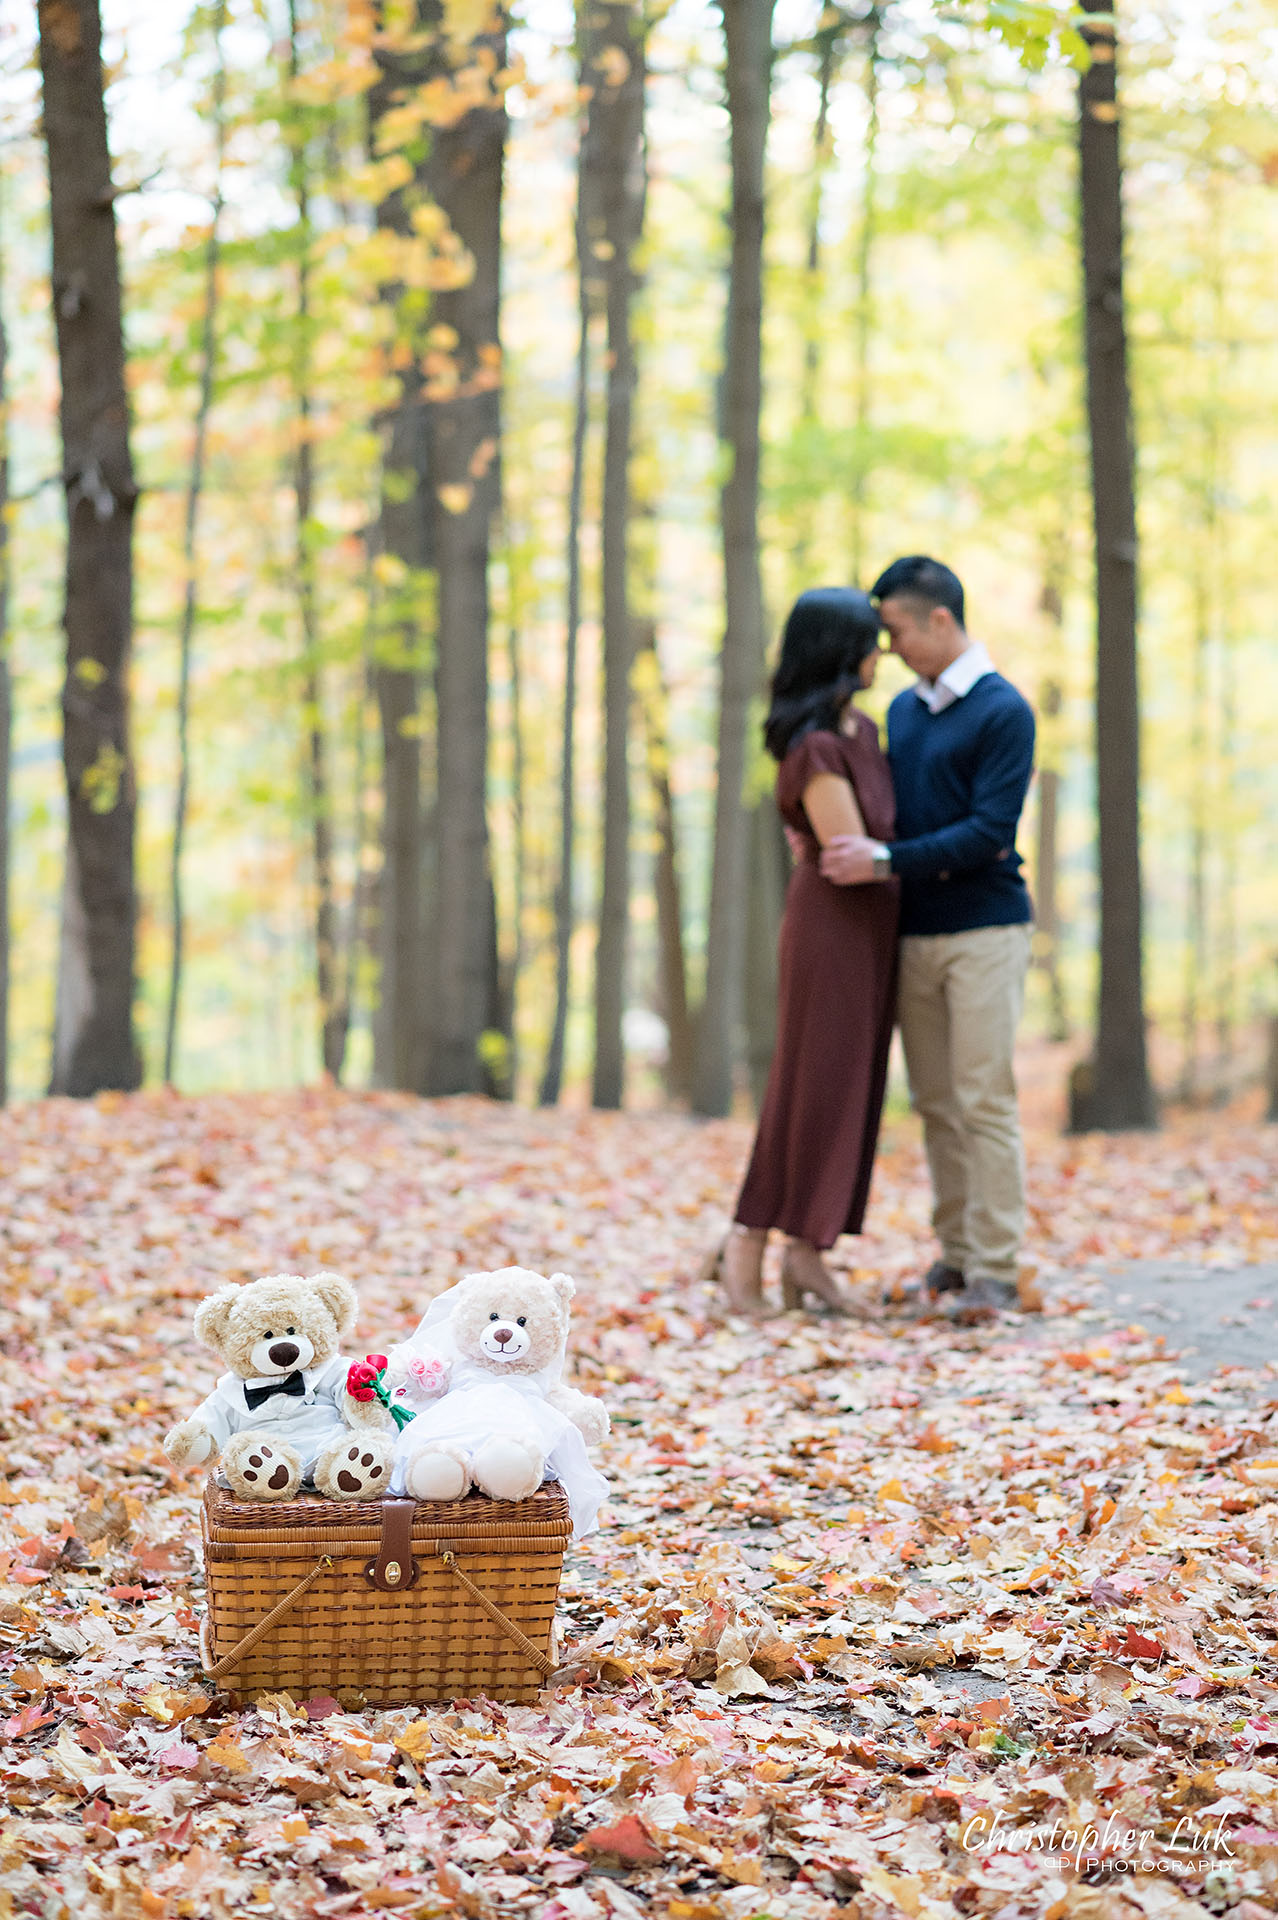 Christopher Luk Toronto Wedding Engagement Session Photographer Autumn Fall Leaves Natural Candid Photojournalistic Bride Groom Hiking Trail Stuffed Animal WongFu Productions Spencer Bear Picnic Basket Trees Hug